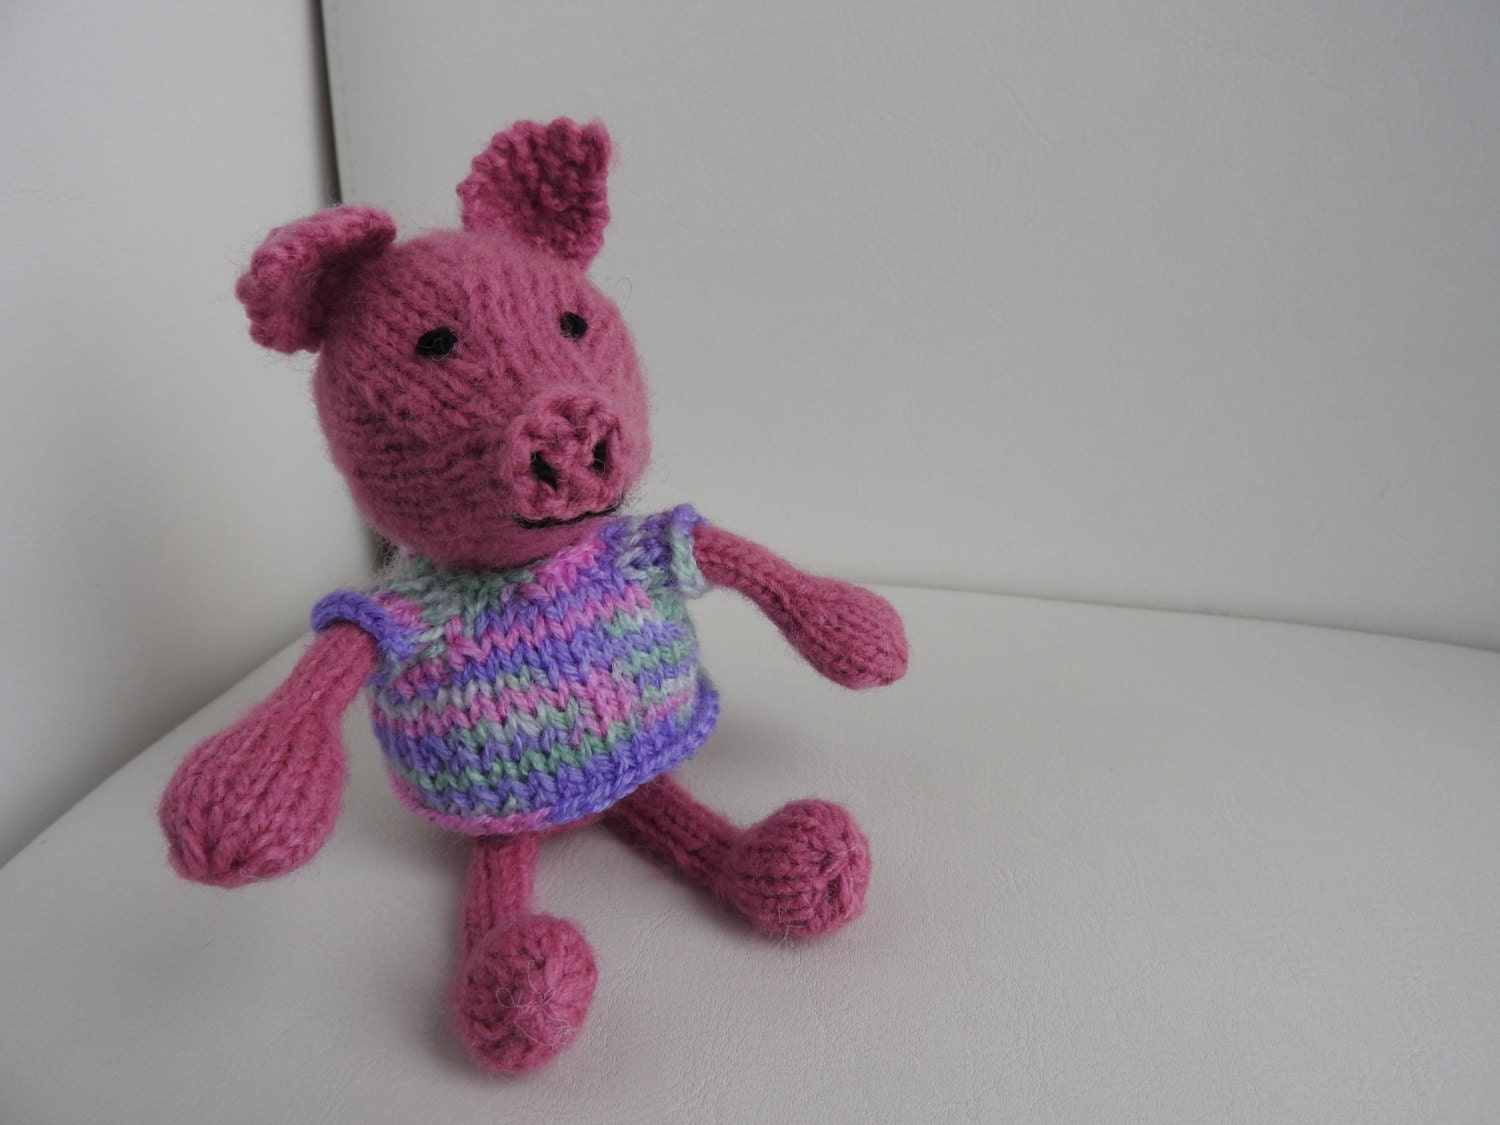 Knitting Pattern Tissue Holder : Hand knitted Pig Pin Cushion Critter Tissue Holder paper